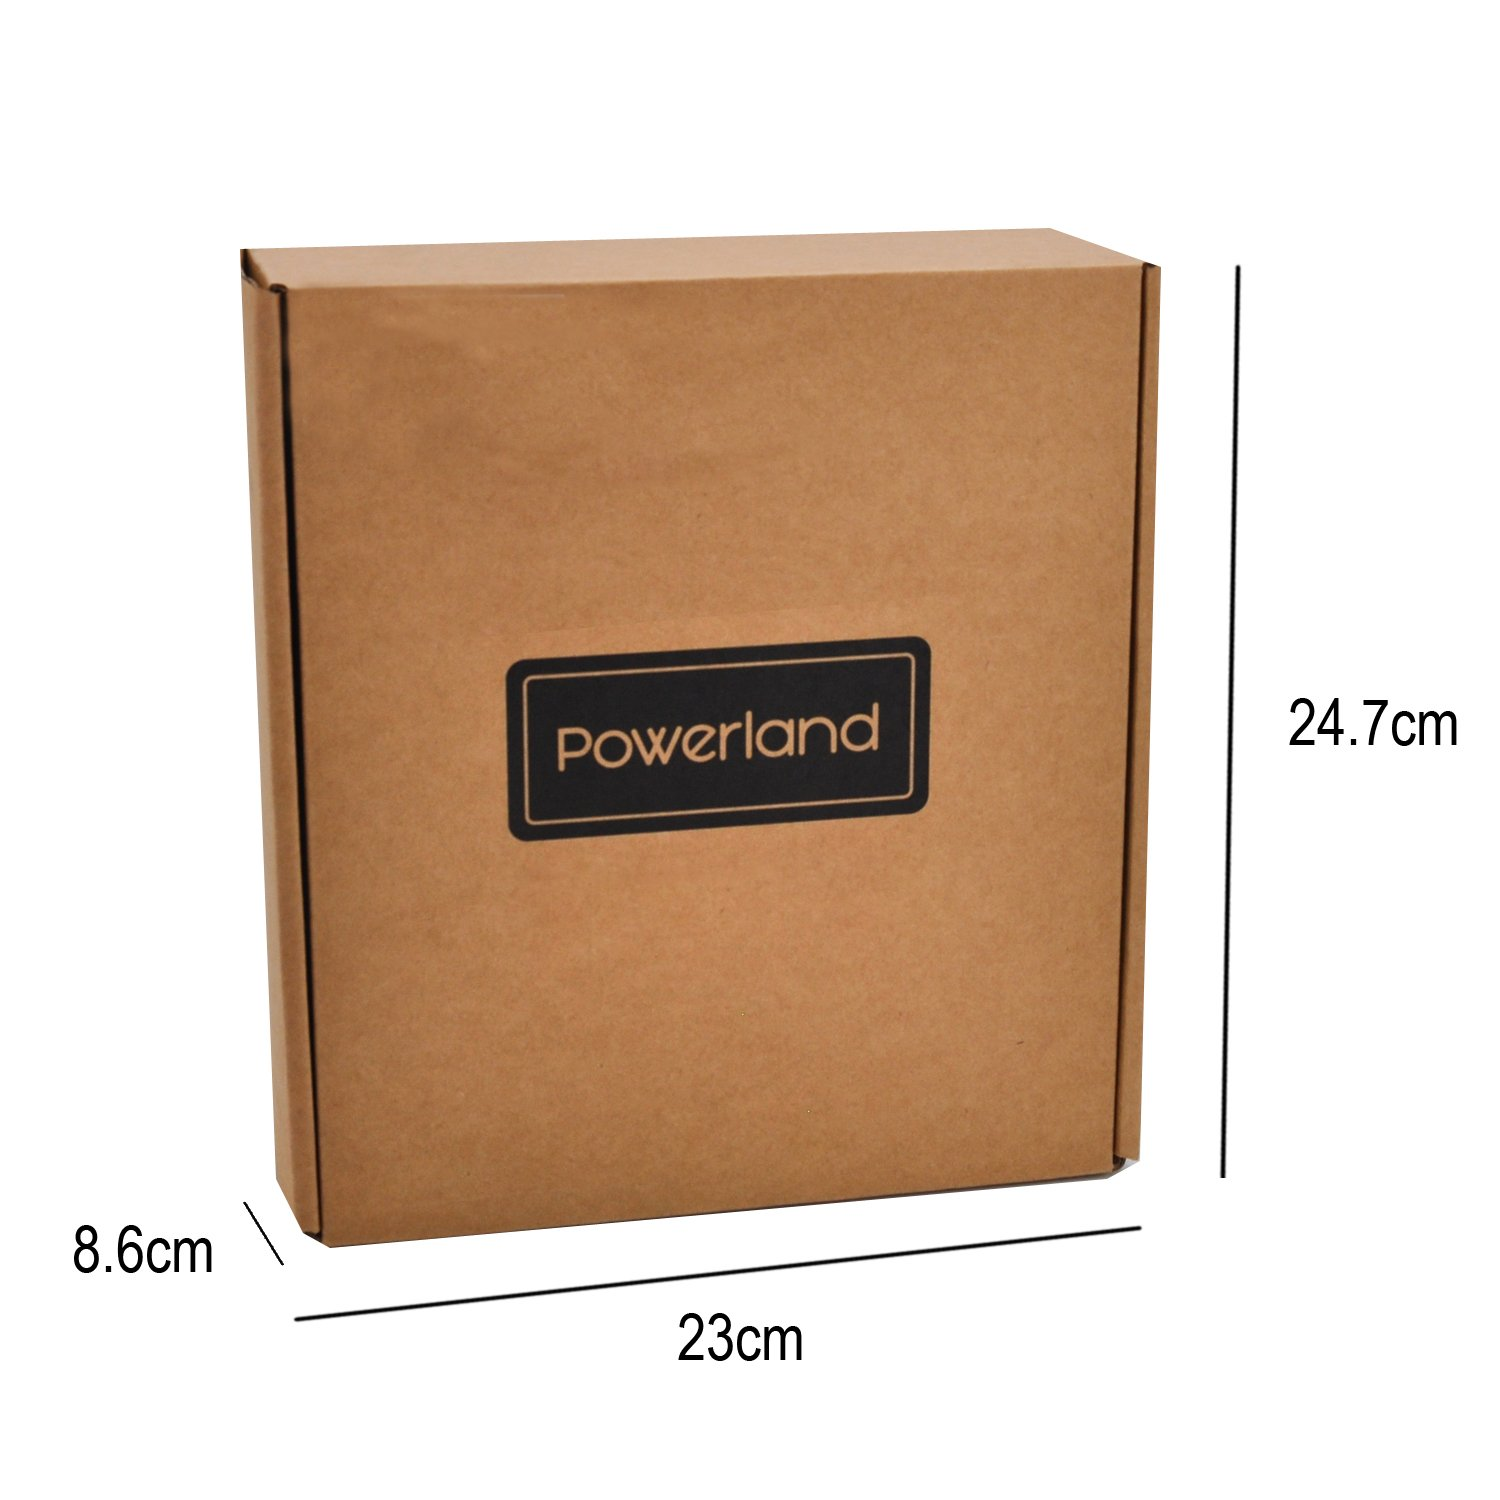 Powerland Perceuse visseuse sans fil TC-CD (Li-lon, 18V,,1 vitesses, Mandrin amovible monobloc (10 mm), Eclairage LED, Livré en coffret + chargeur rapide)